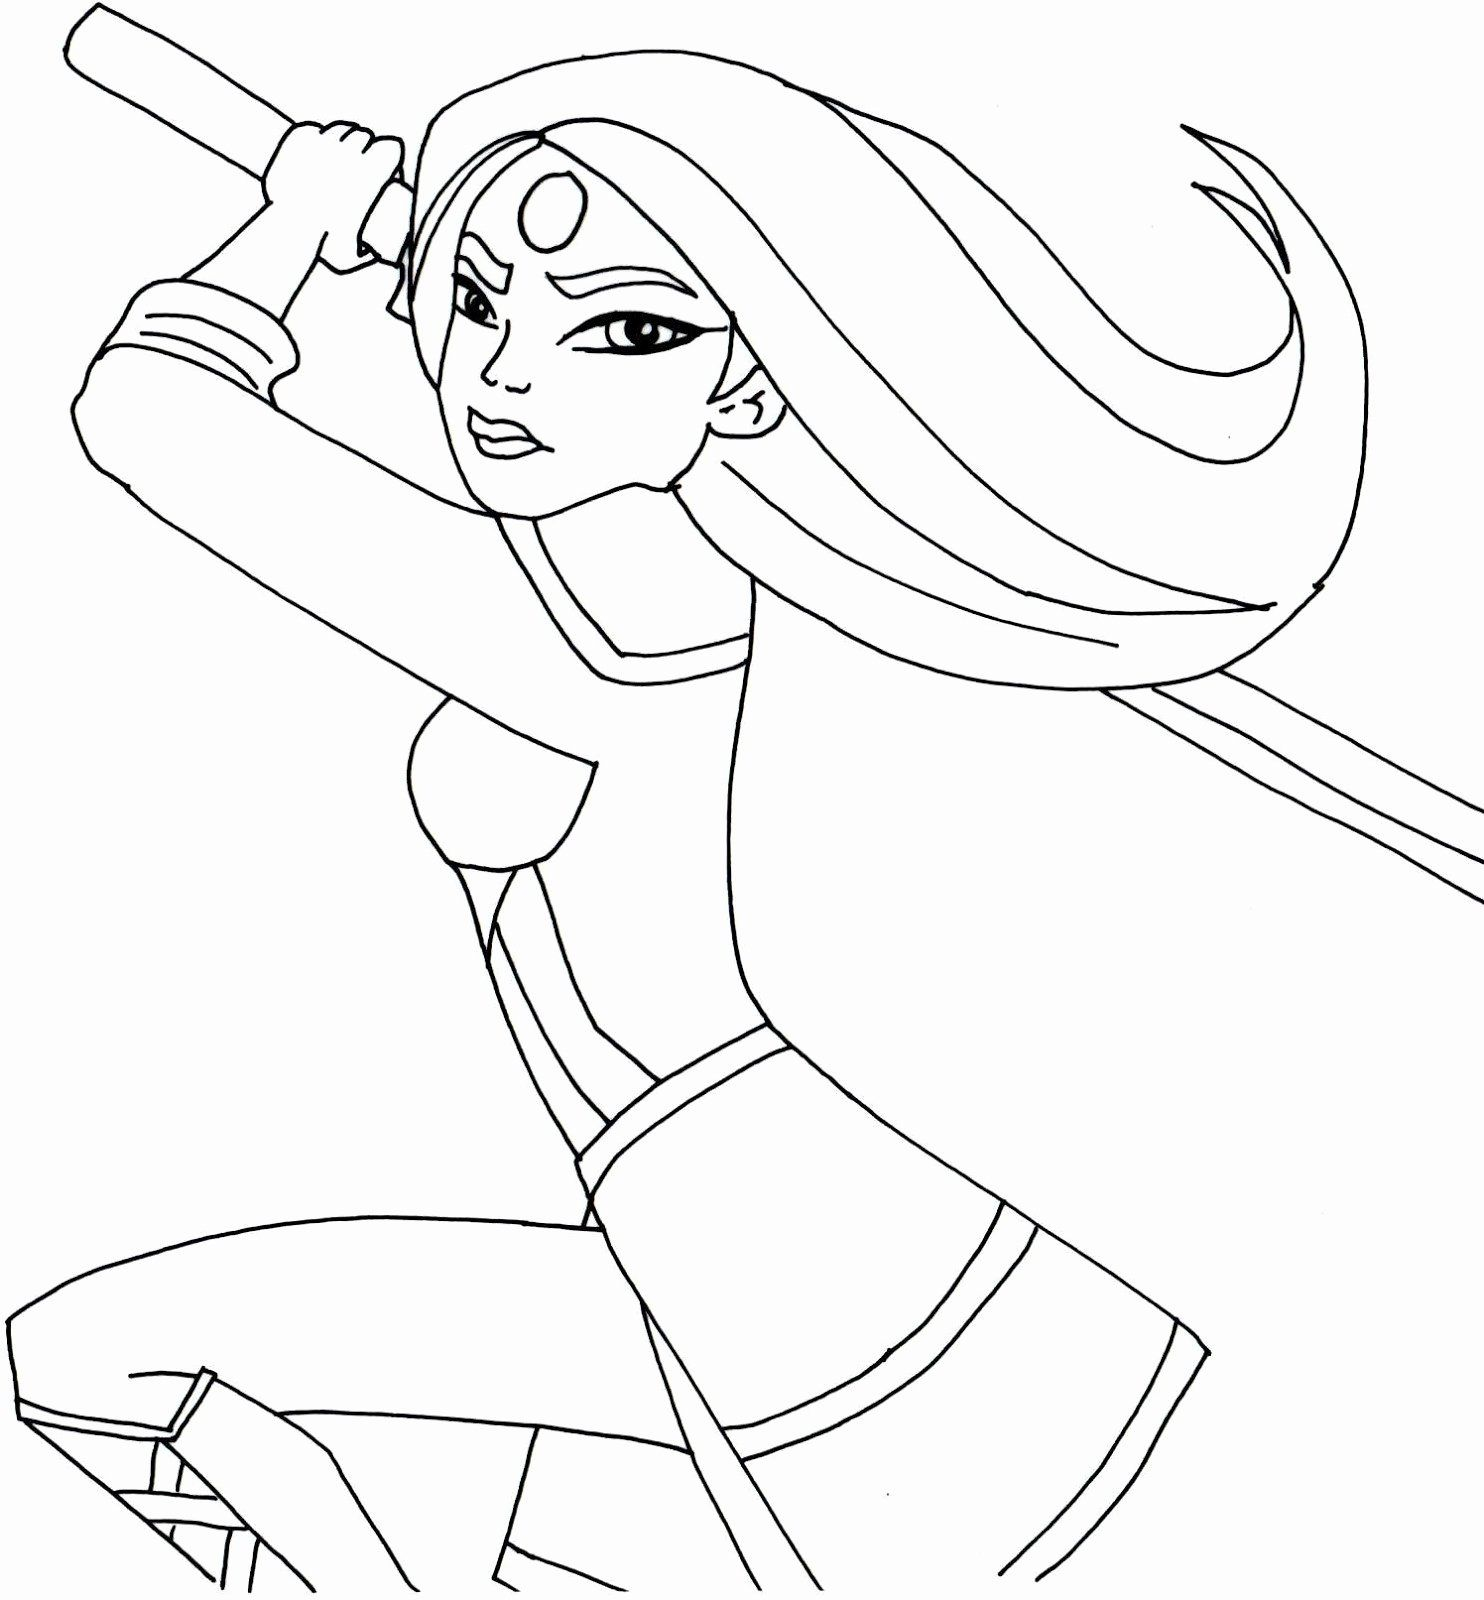 Coloring Pages For Your Boyfriend Lovely Lego Superhero Coloring Pages Awesome 20 Sp In 2020 Monster Coloring Pages Super Hero Coloring Sheets Superhero Coloring Pages